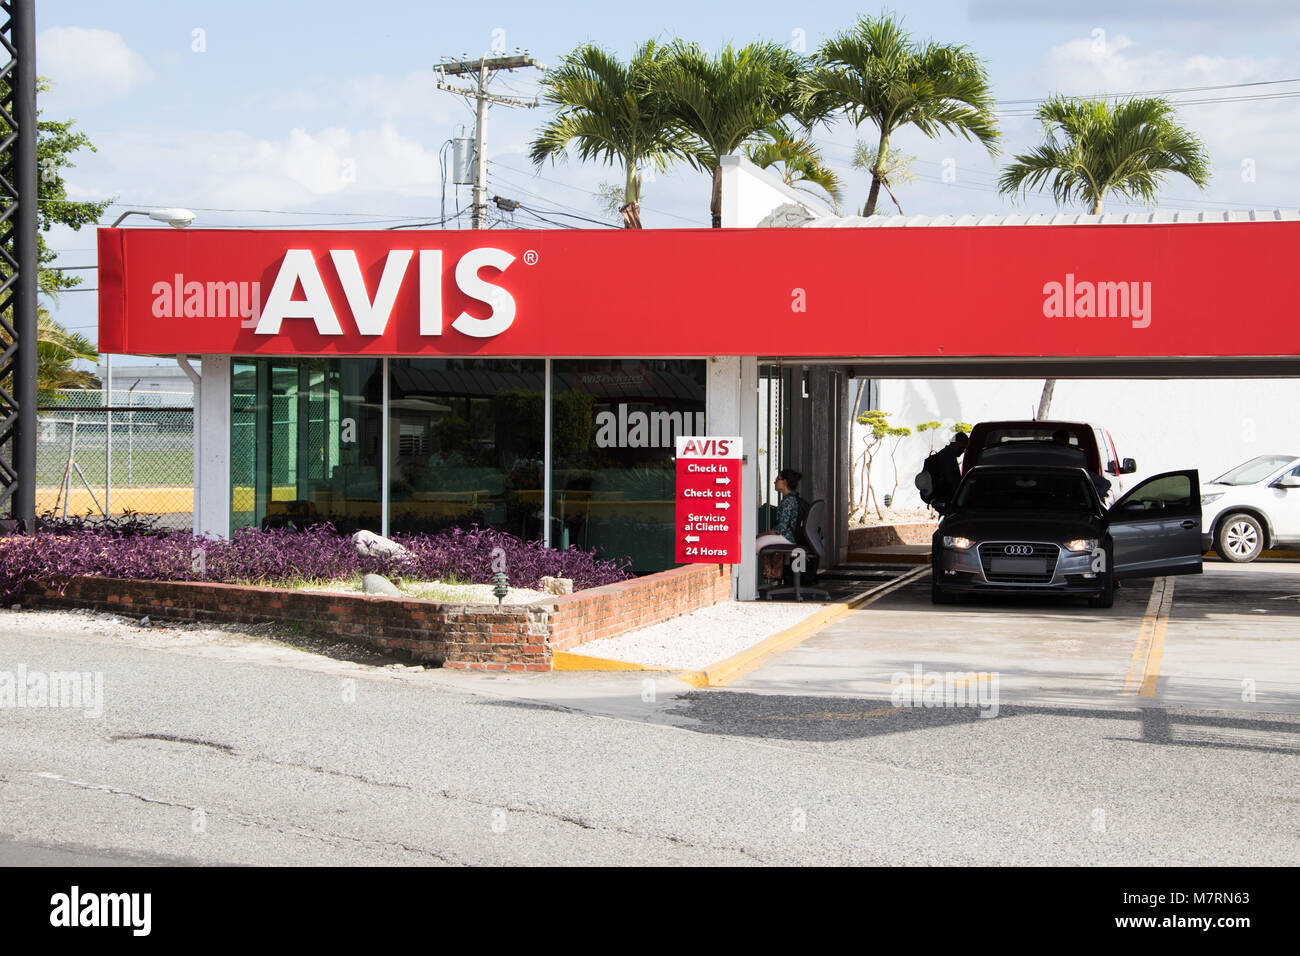 Avis Car Rental Stock Photos Avis Car Rental Stock Images Alamy